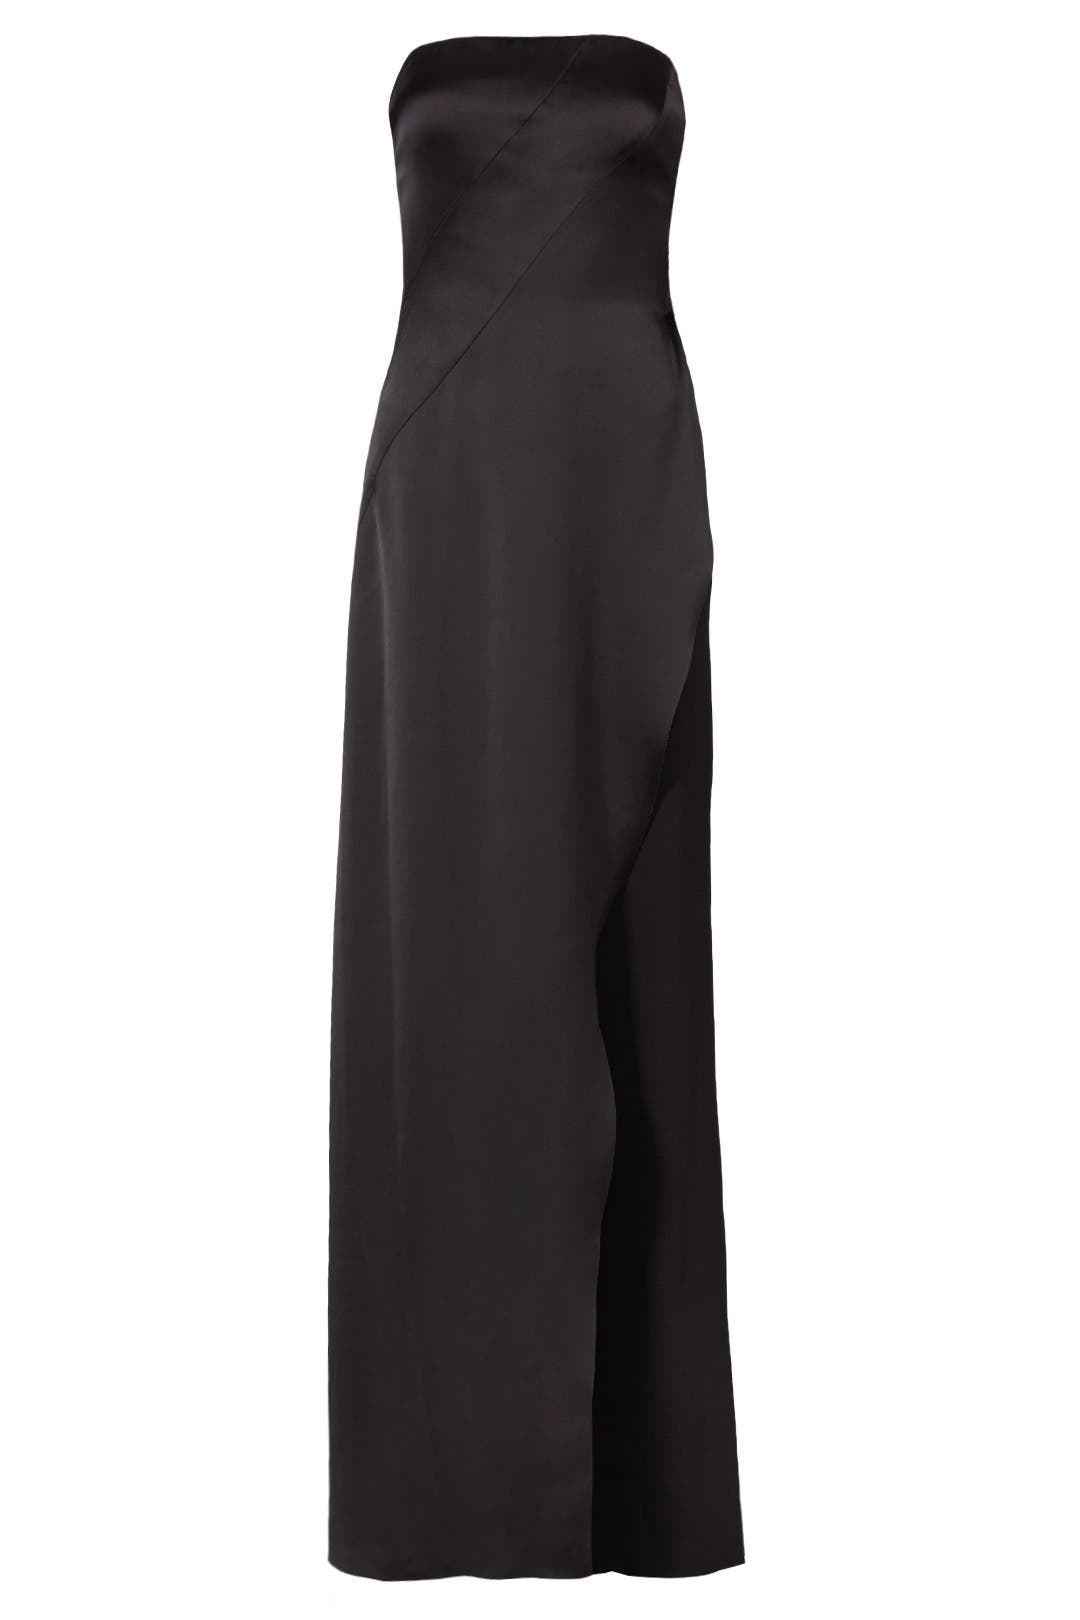 Evening Dress Jumpsuit by Donna Karan New York for $241 | Rent the ...